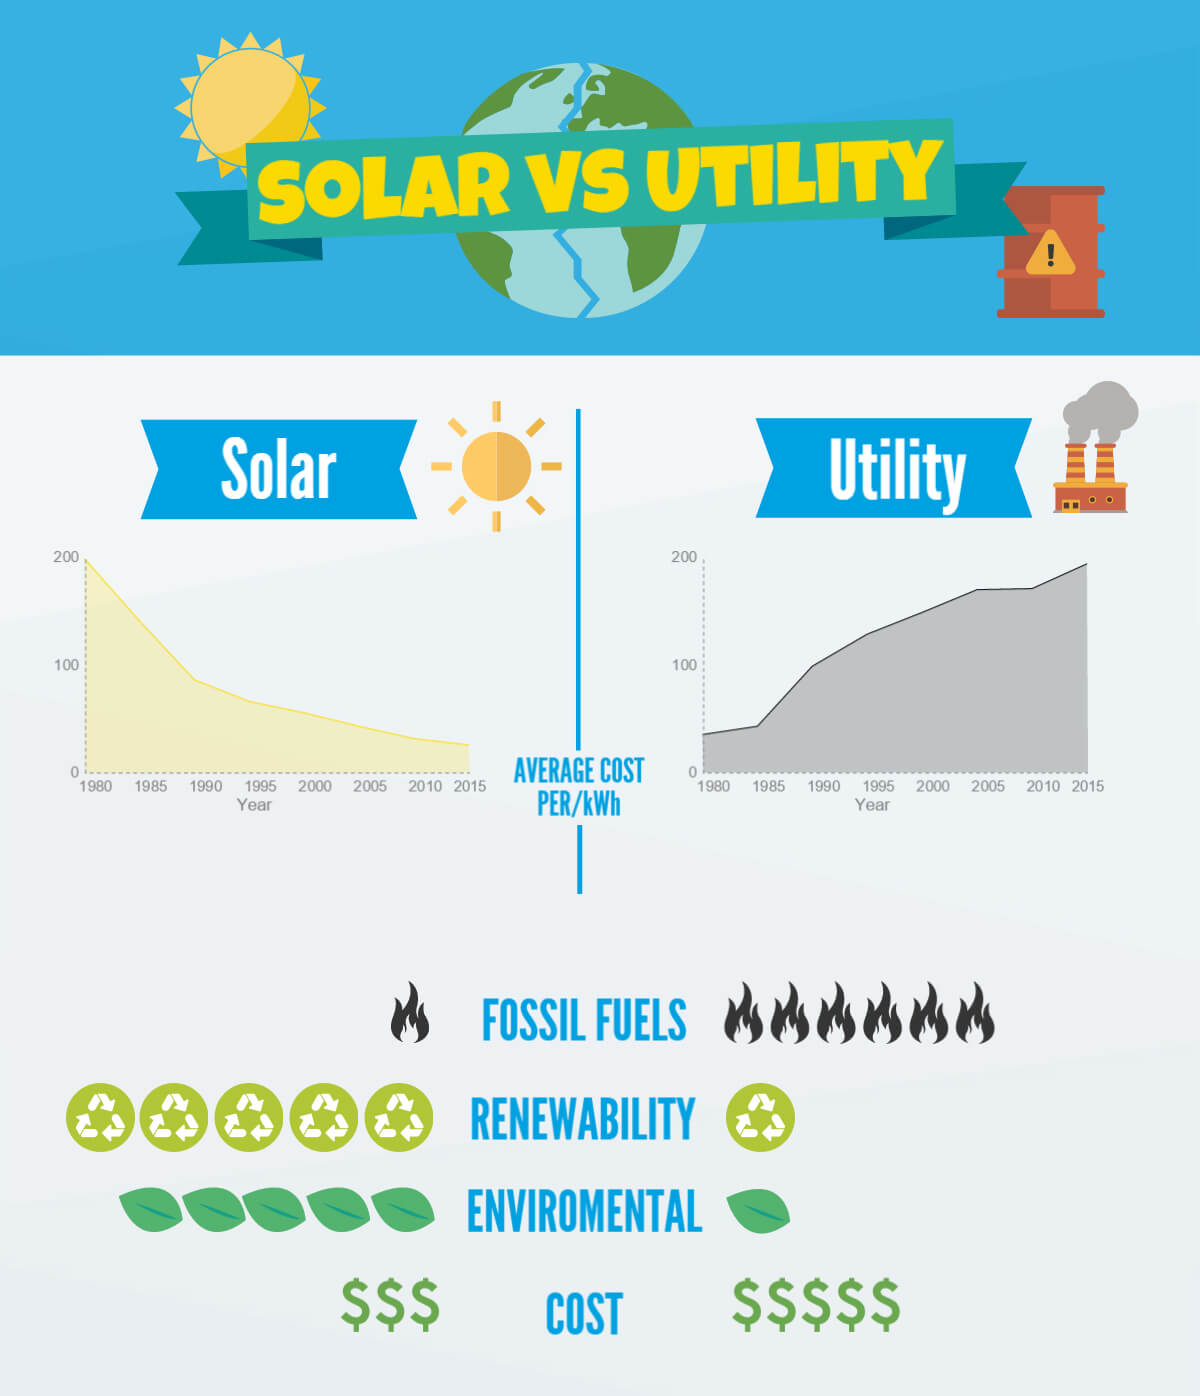 describes the solar benefits between coal and solar